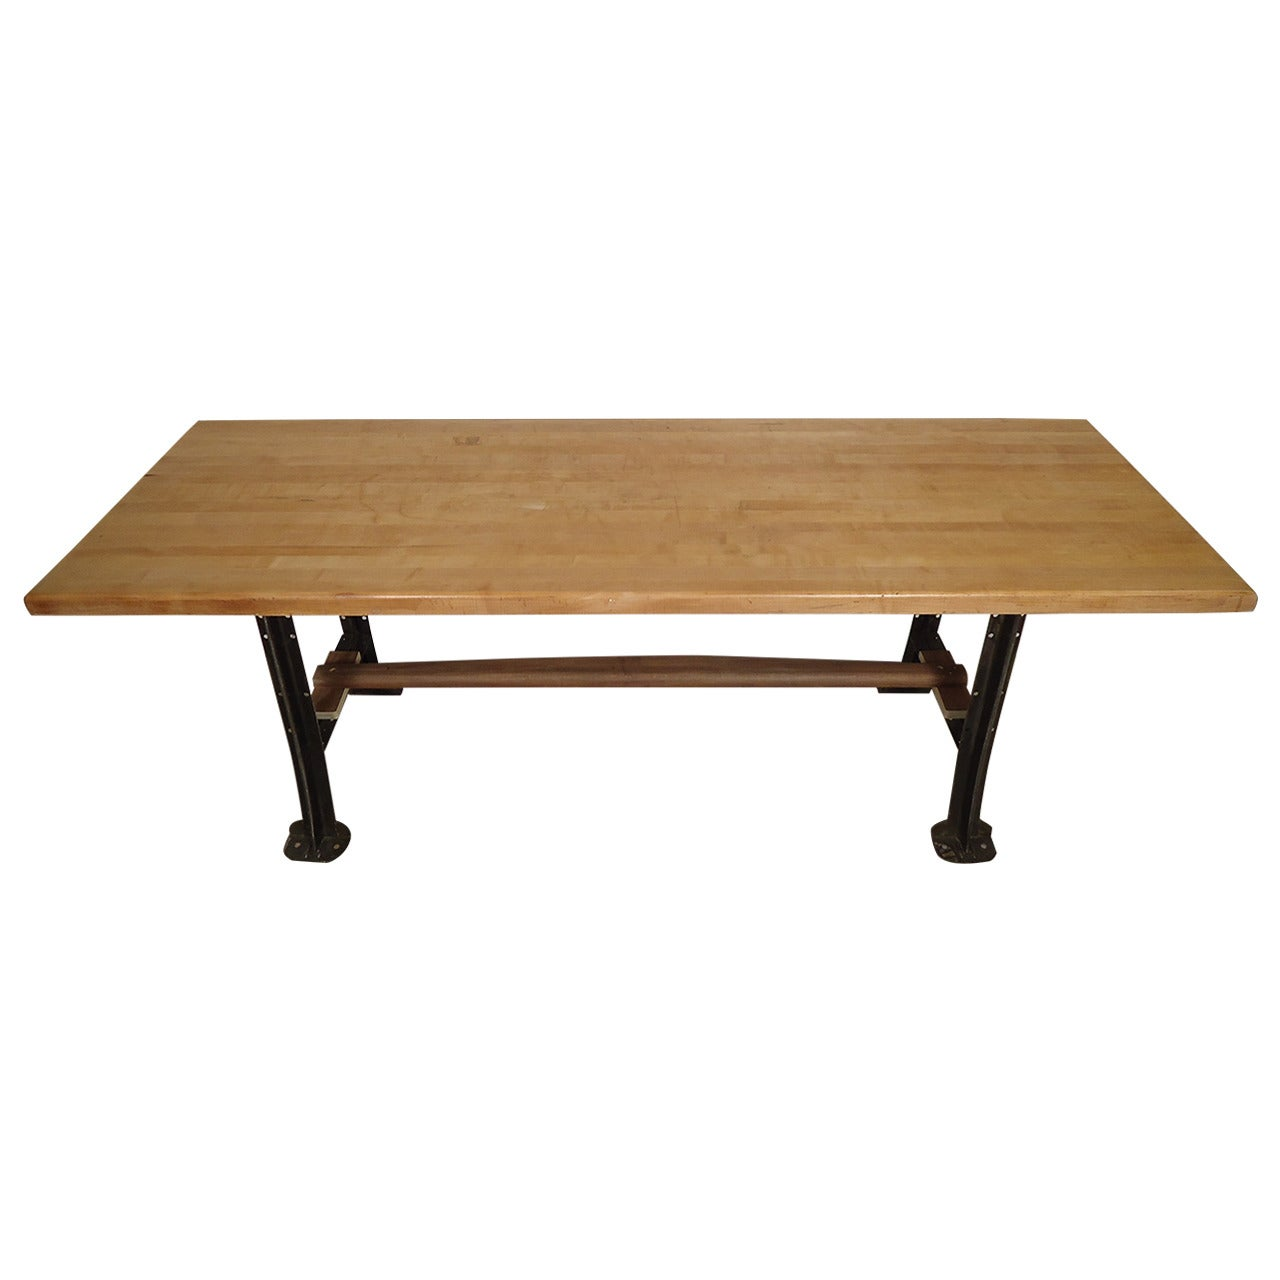 Massive Butcher Block Dining Table on Solid Iron Legs